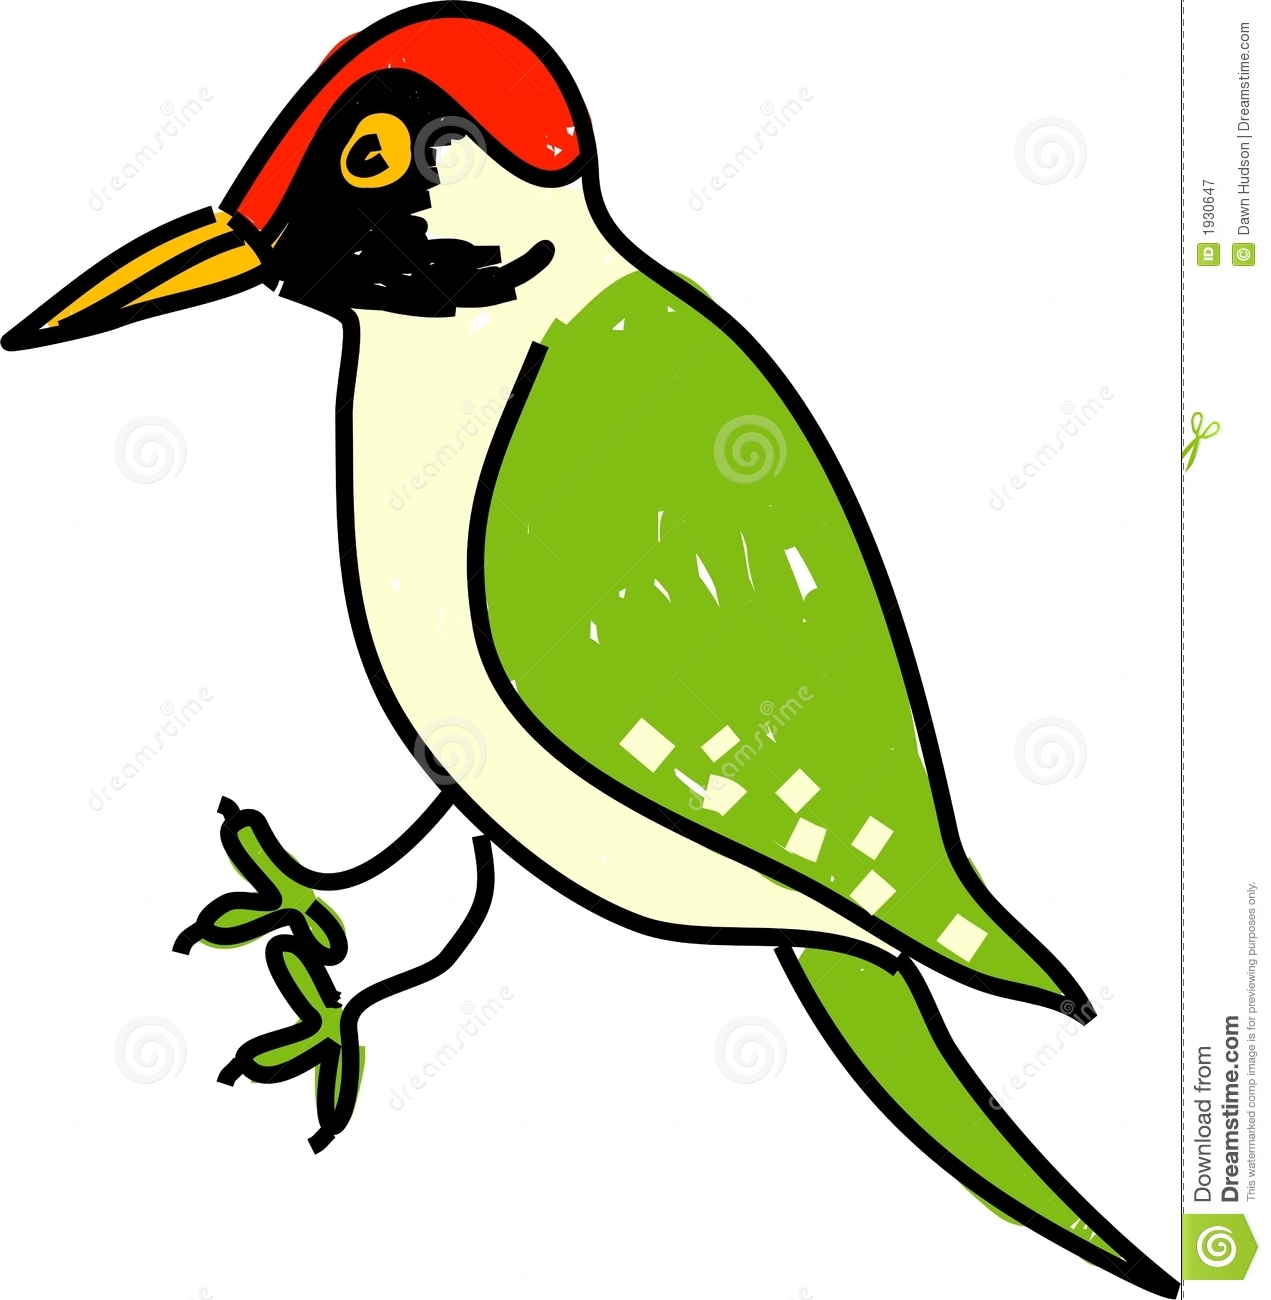 Woodpecker Clipart | Clipart Panda - Free Clipart Images